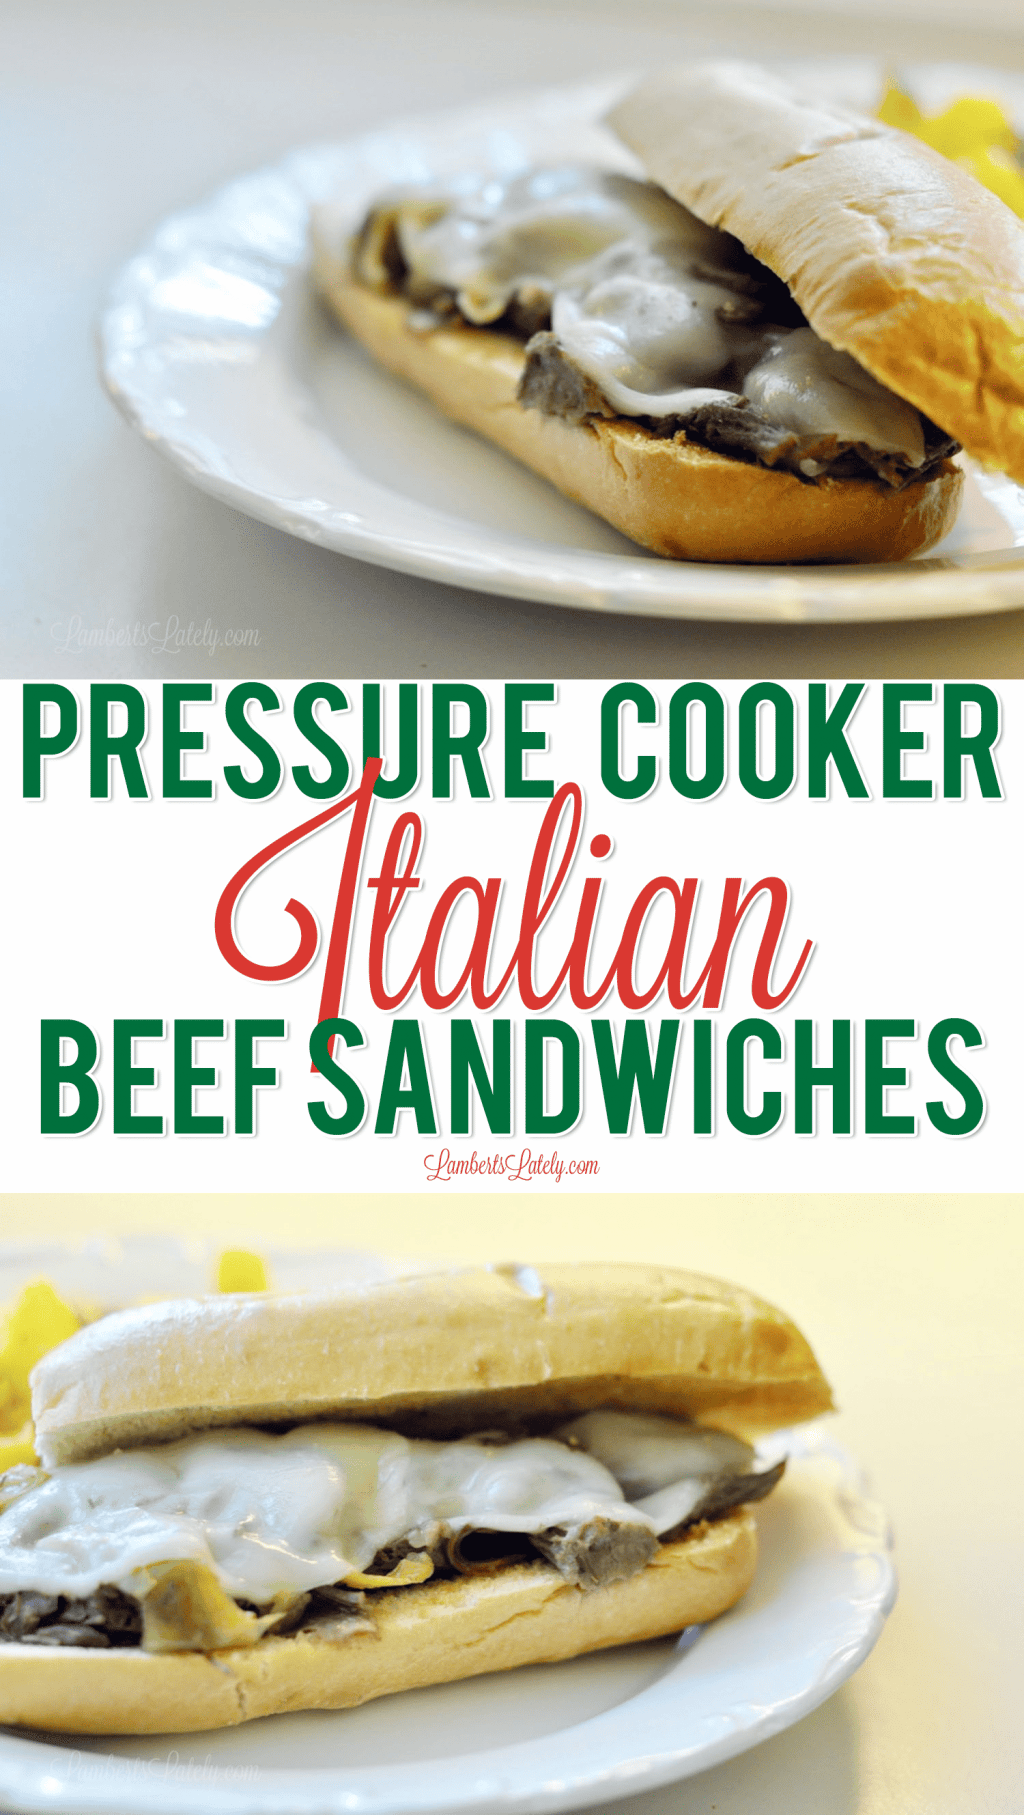 This recipe for Pressure Cooker Italian Beef Sandwiches is perfect for a weeknight - can be prepped easily in an Instant Pot is kid-approved!